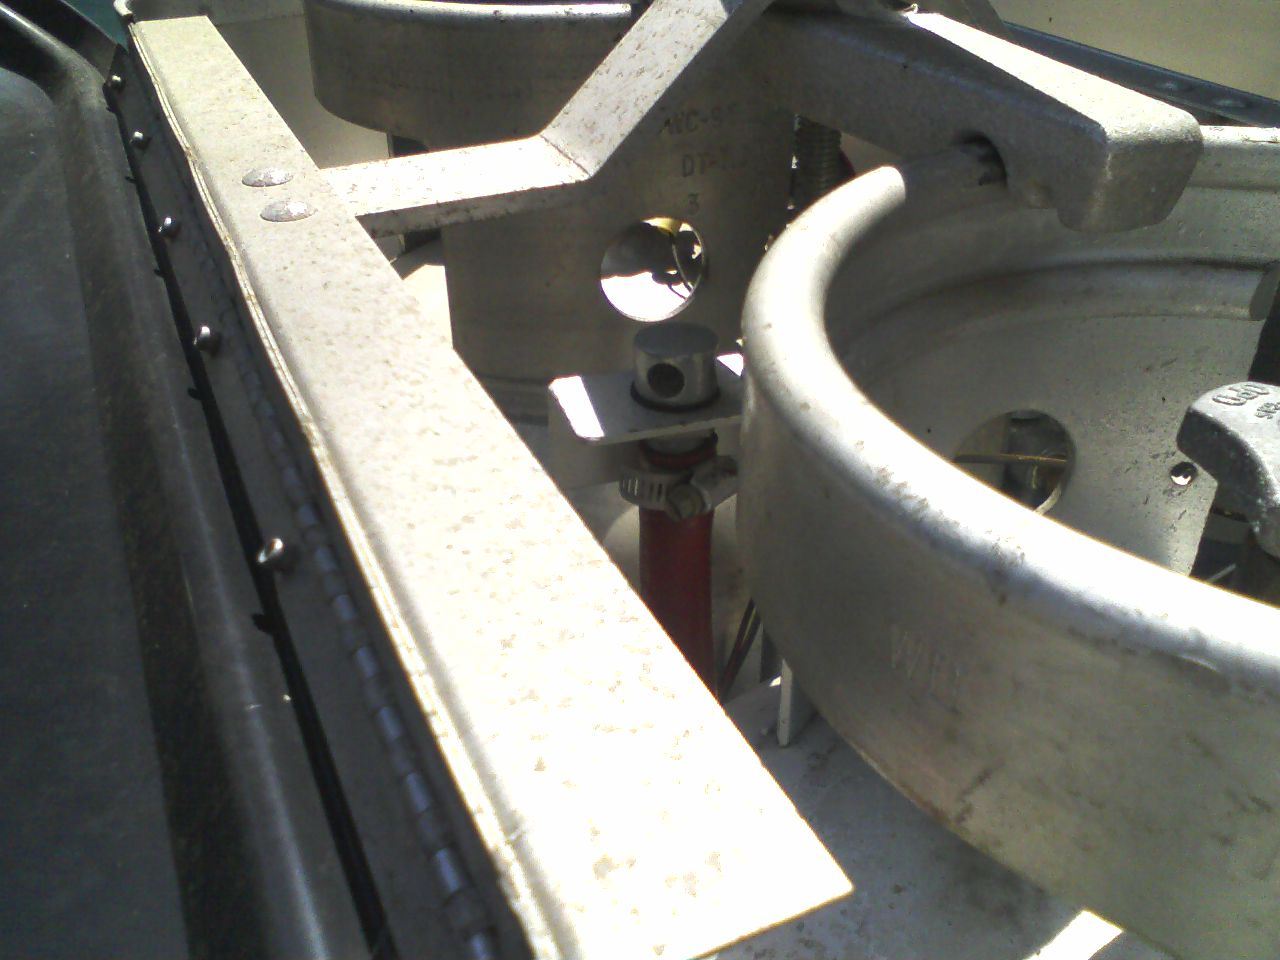 Click image for larger version  Name:Fuel Tank Vent Between LPG Tanks.jpg Views:116 Size:134.6 KB ID:111561